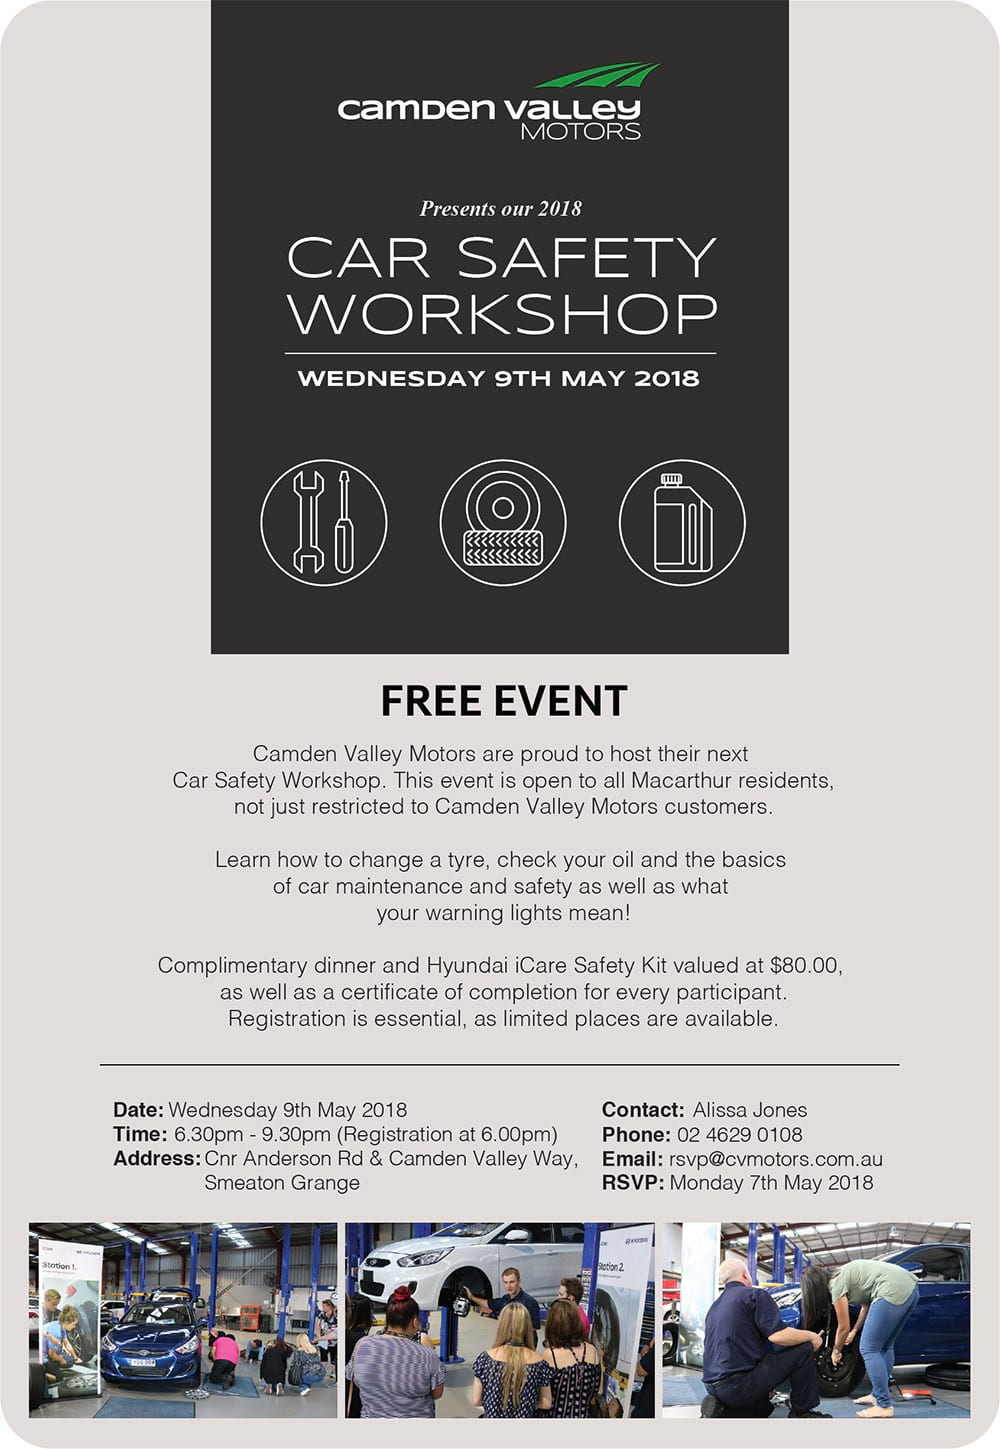 Car Safety Workshop - Wednesday 9th May 2018